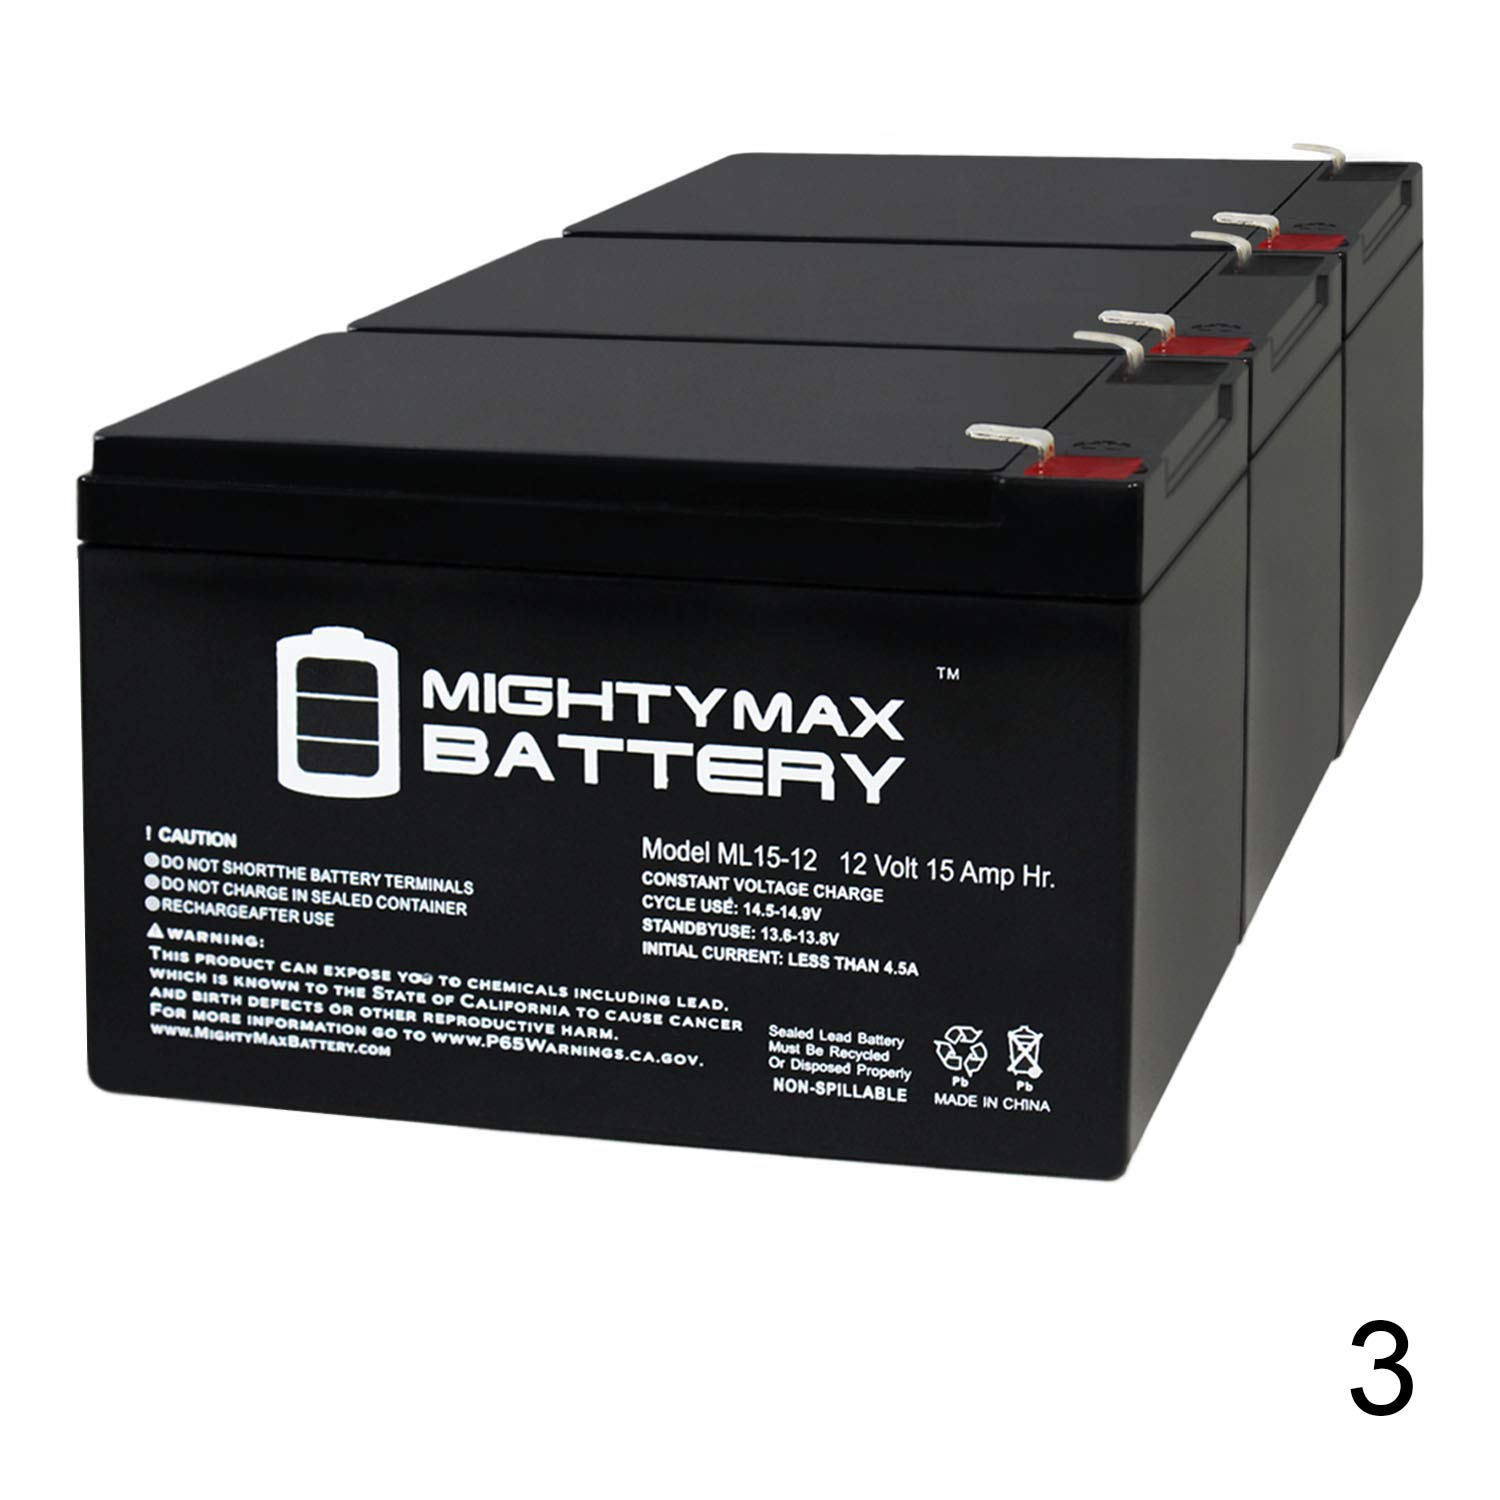 Mighty Max Battery 12V 15AH F2 Replaces Razor 15165070 MX650 Dirt Rocket - 3 Pack Brand Product by Mighty Max Battery